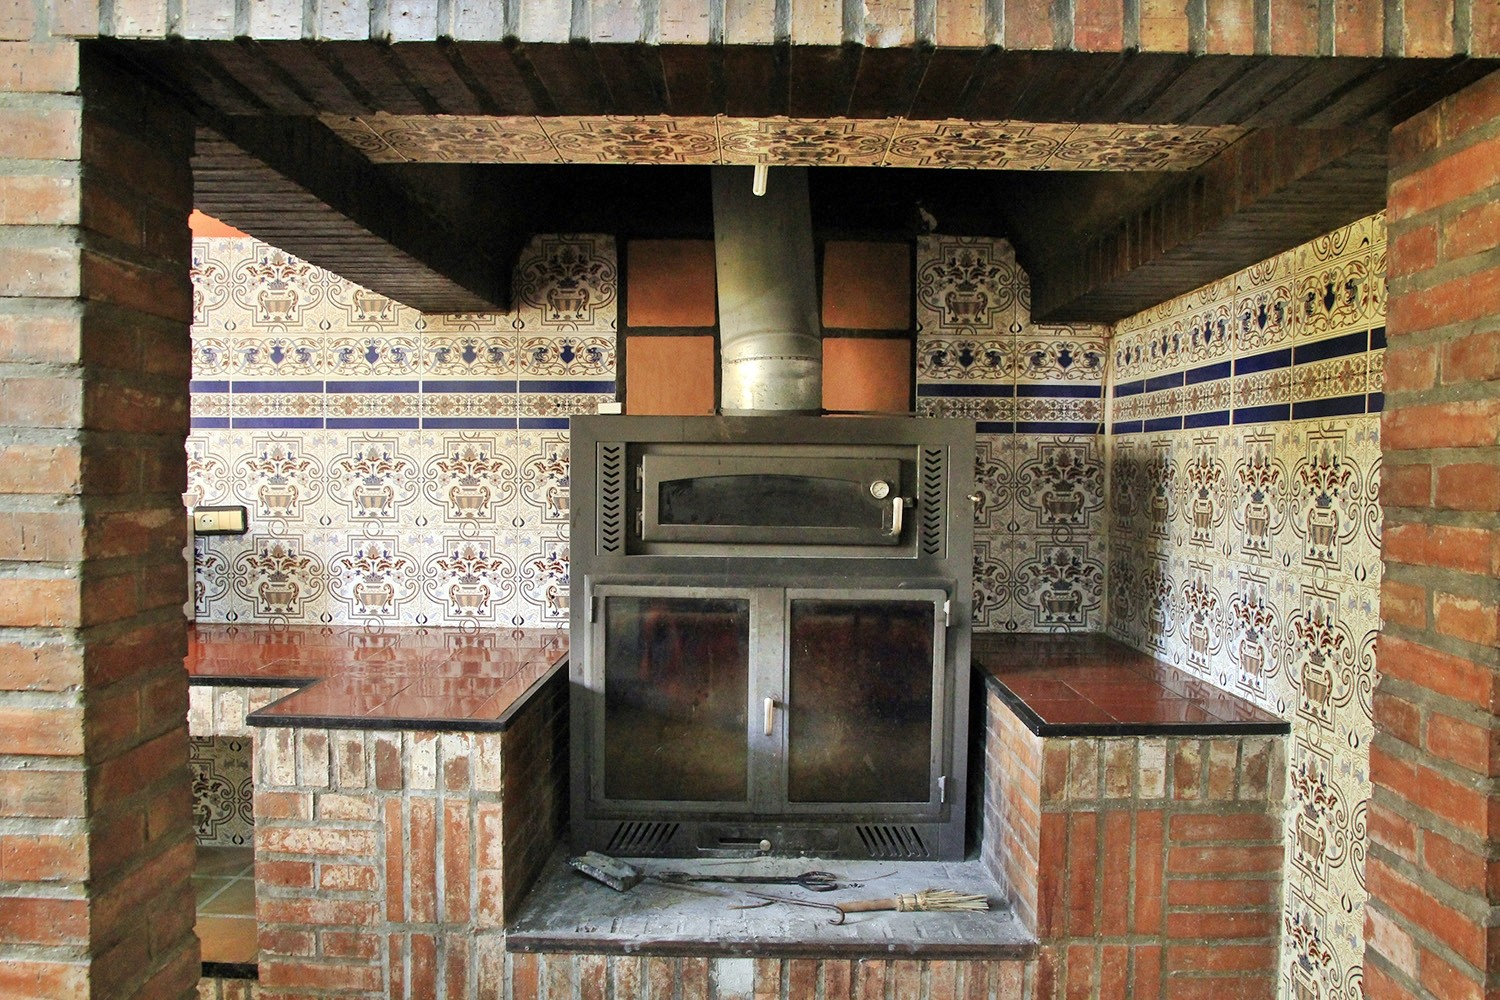 The wood stove in the kitchen